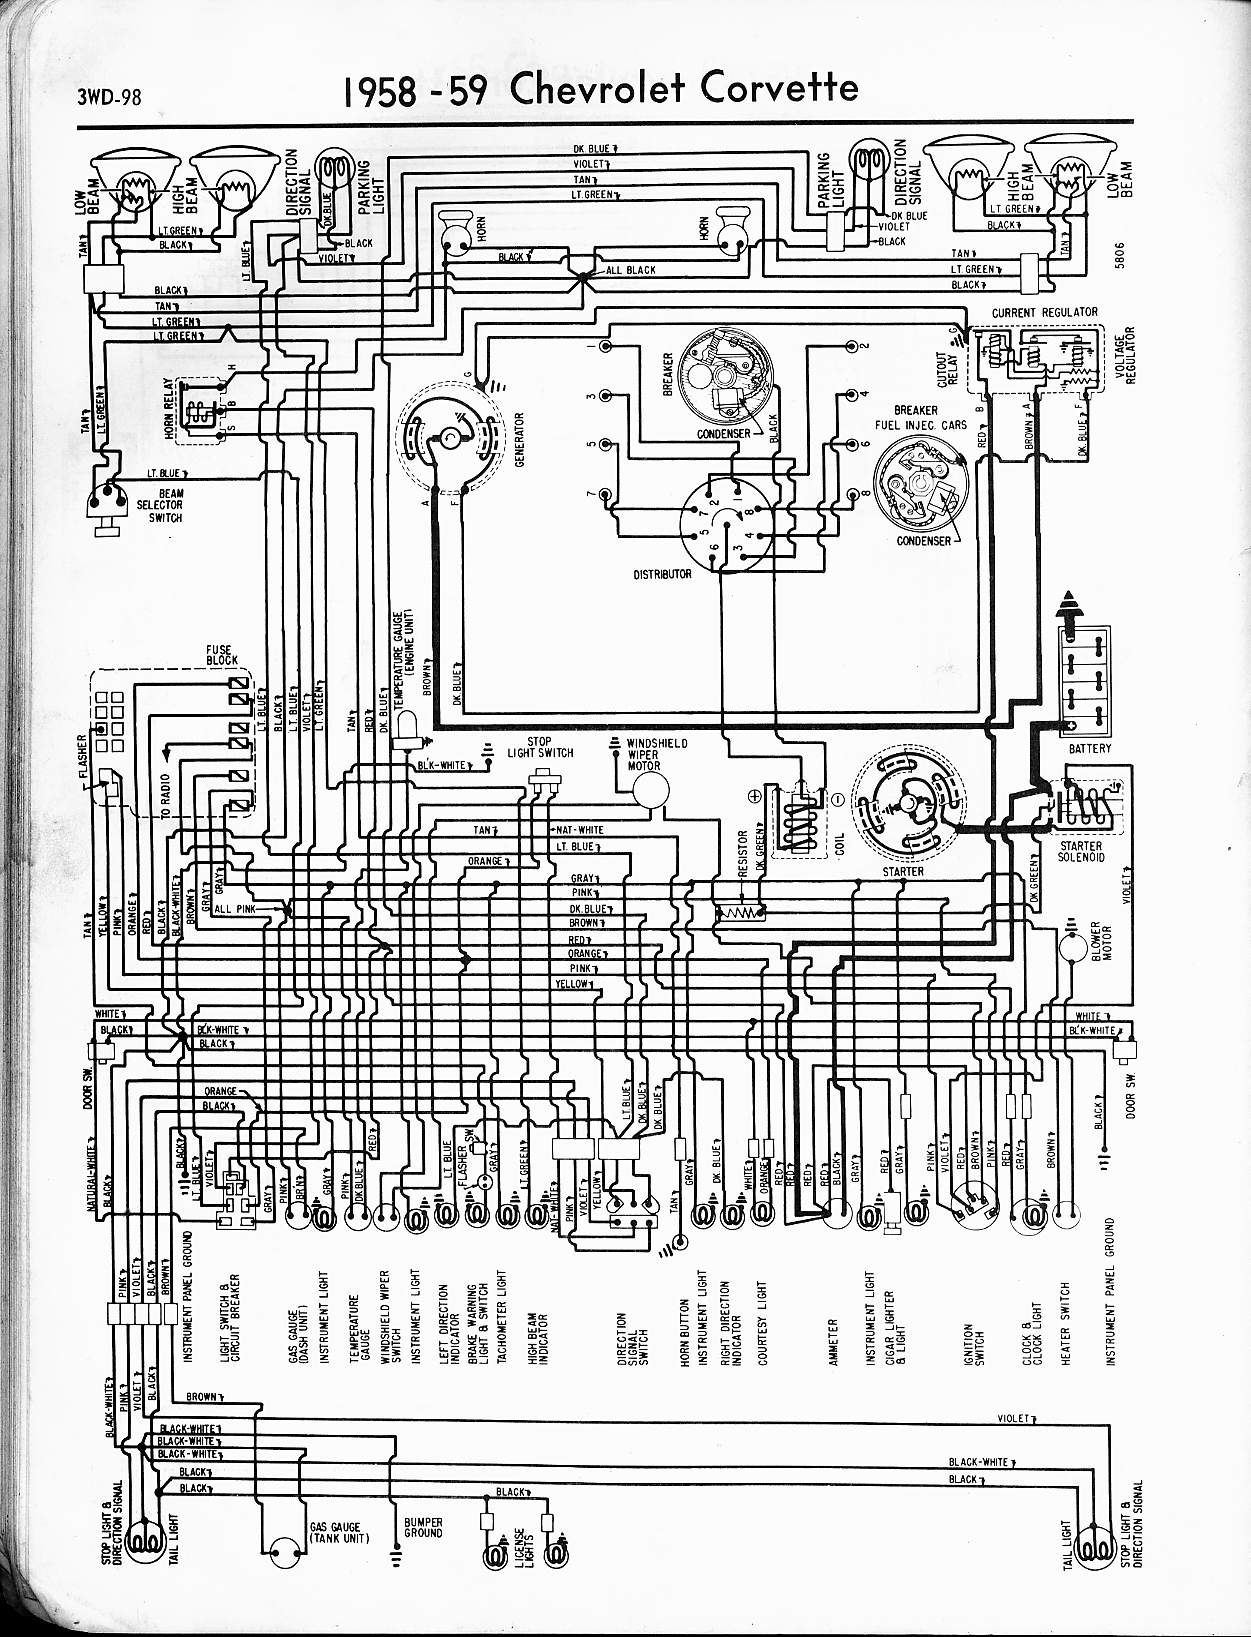 MWireChev58_3WD 098 57 65 chevy wiring diagrams 1965 corvair wiring diagram at aneh.co